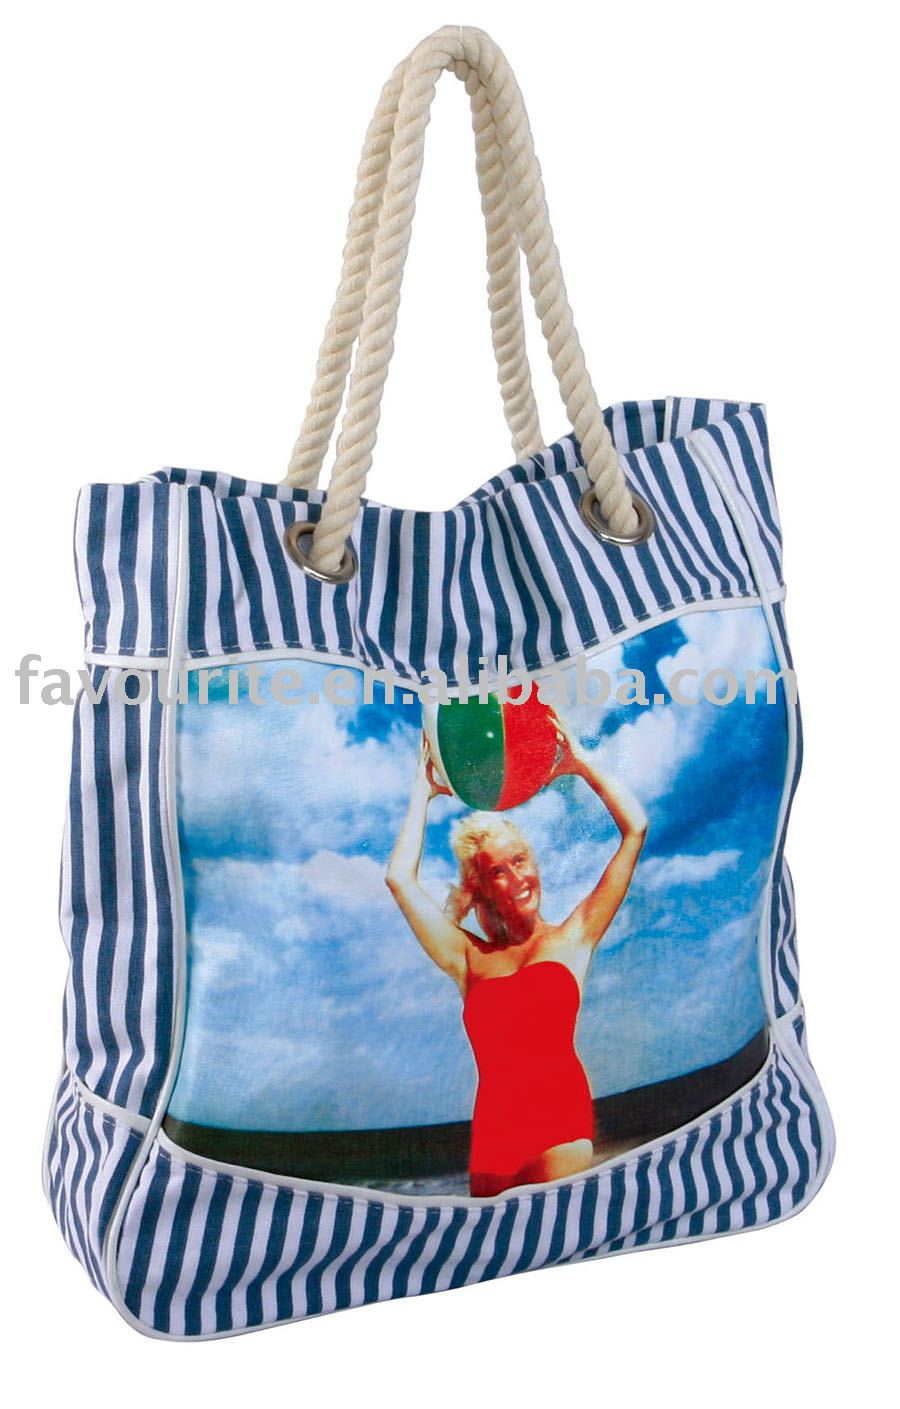 ladies' handbag / fashion bag / beach bag